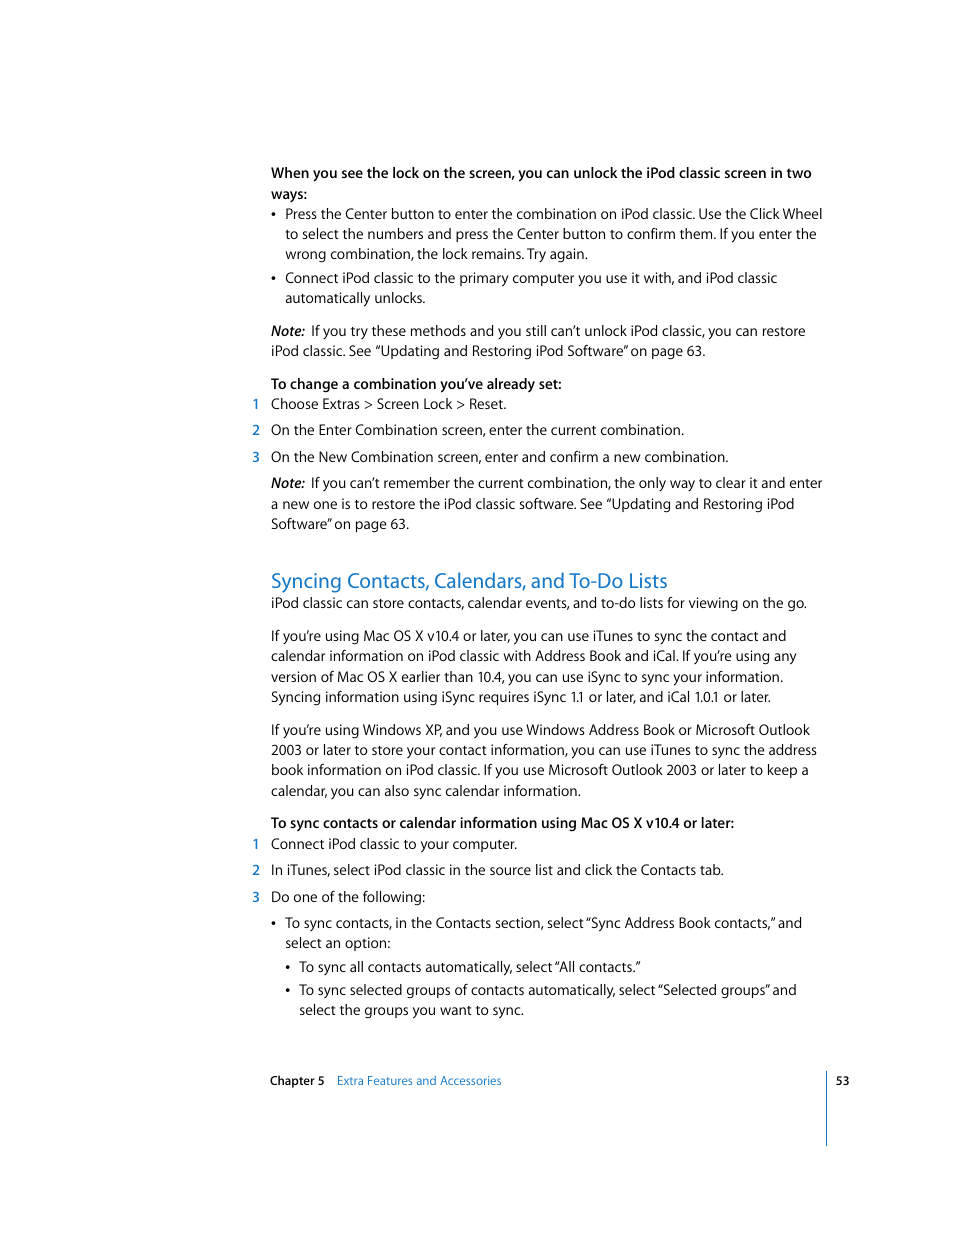 Syncing contacts, calendars, and to-do lists | Apple iPod Classic User  Manual